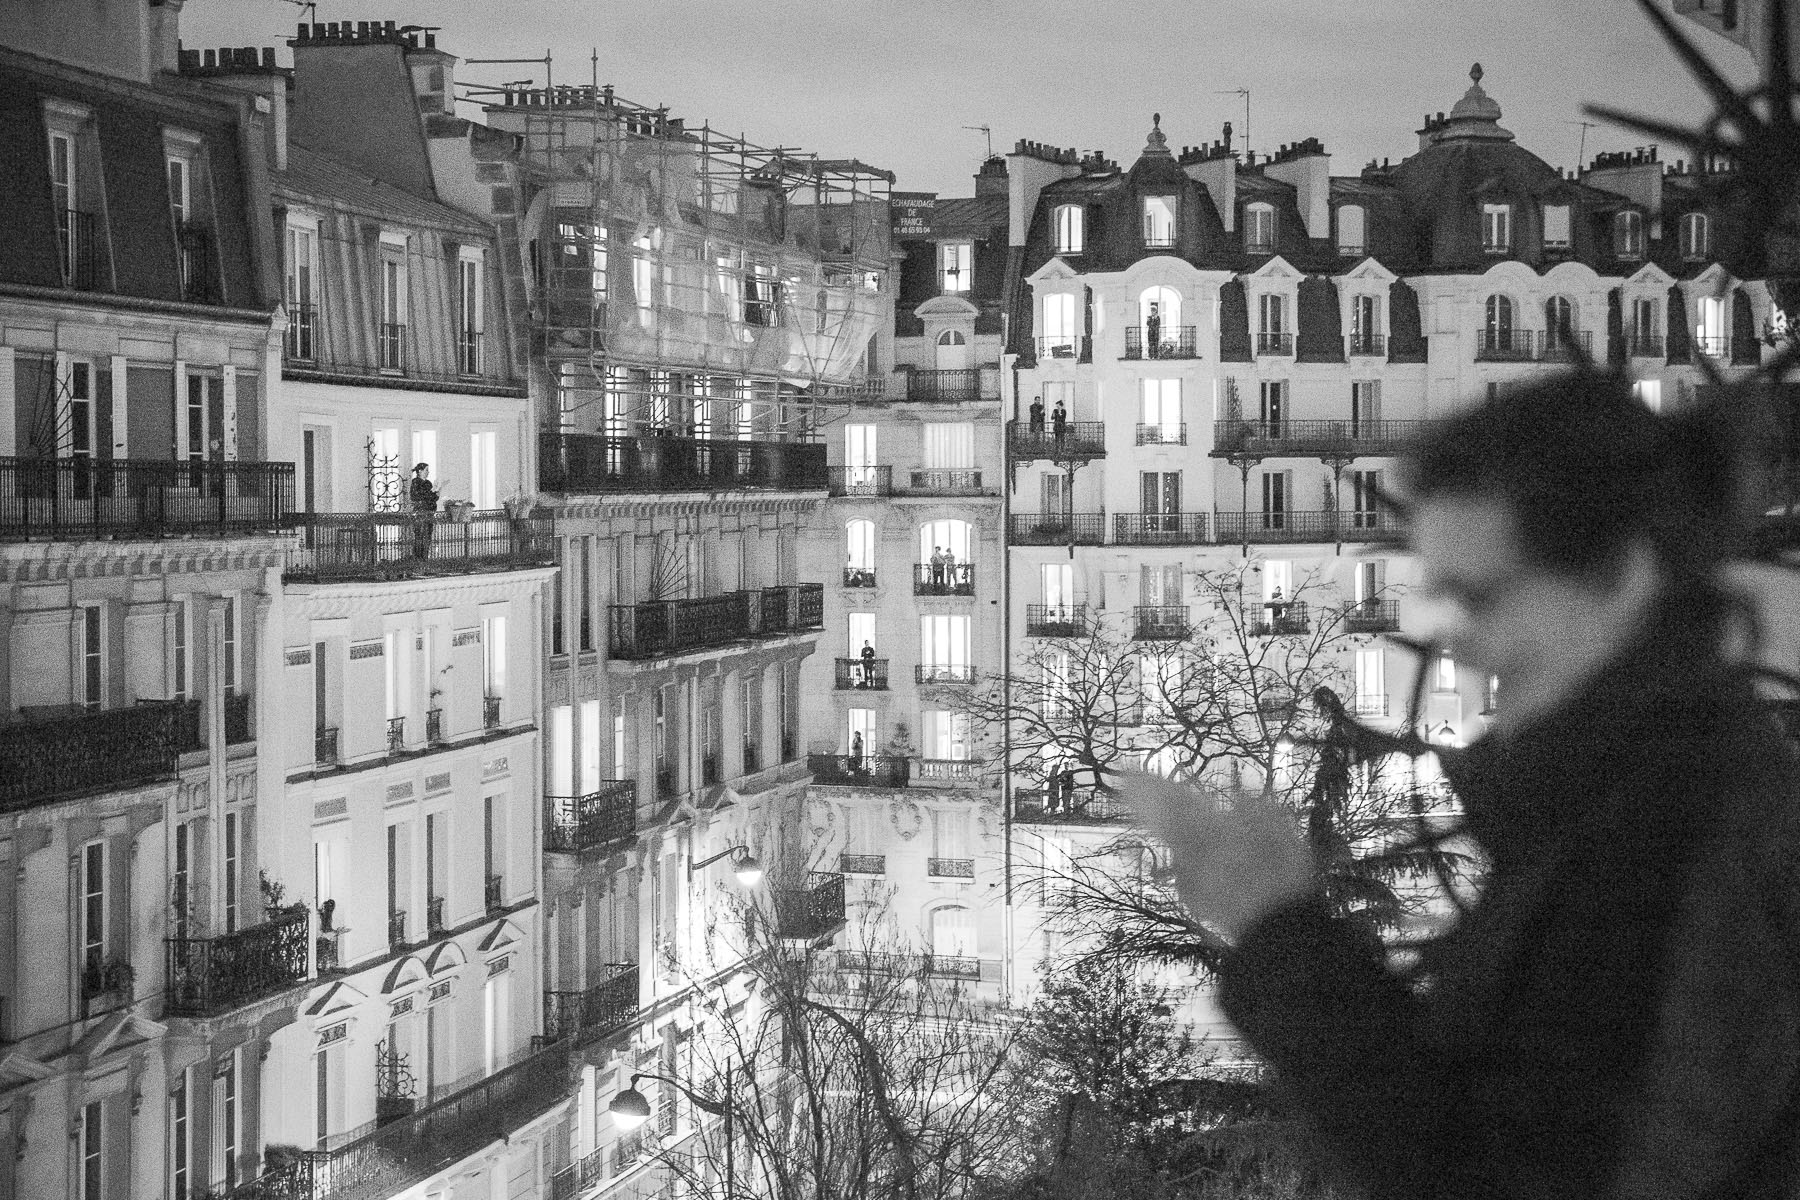 Rue Censier. Every evening at 8:00 p.m. confined Parisians go to their windows or balconies to applaud the healthcare workers who are fighting to save lives. March 2020